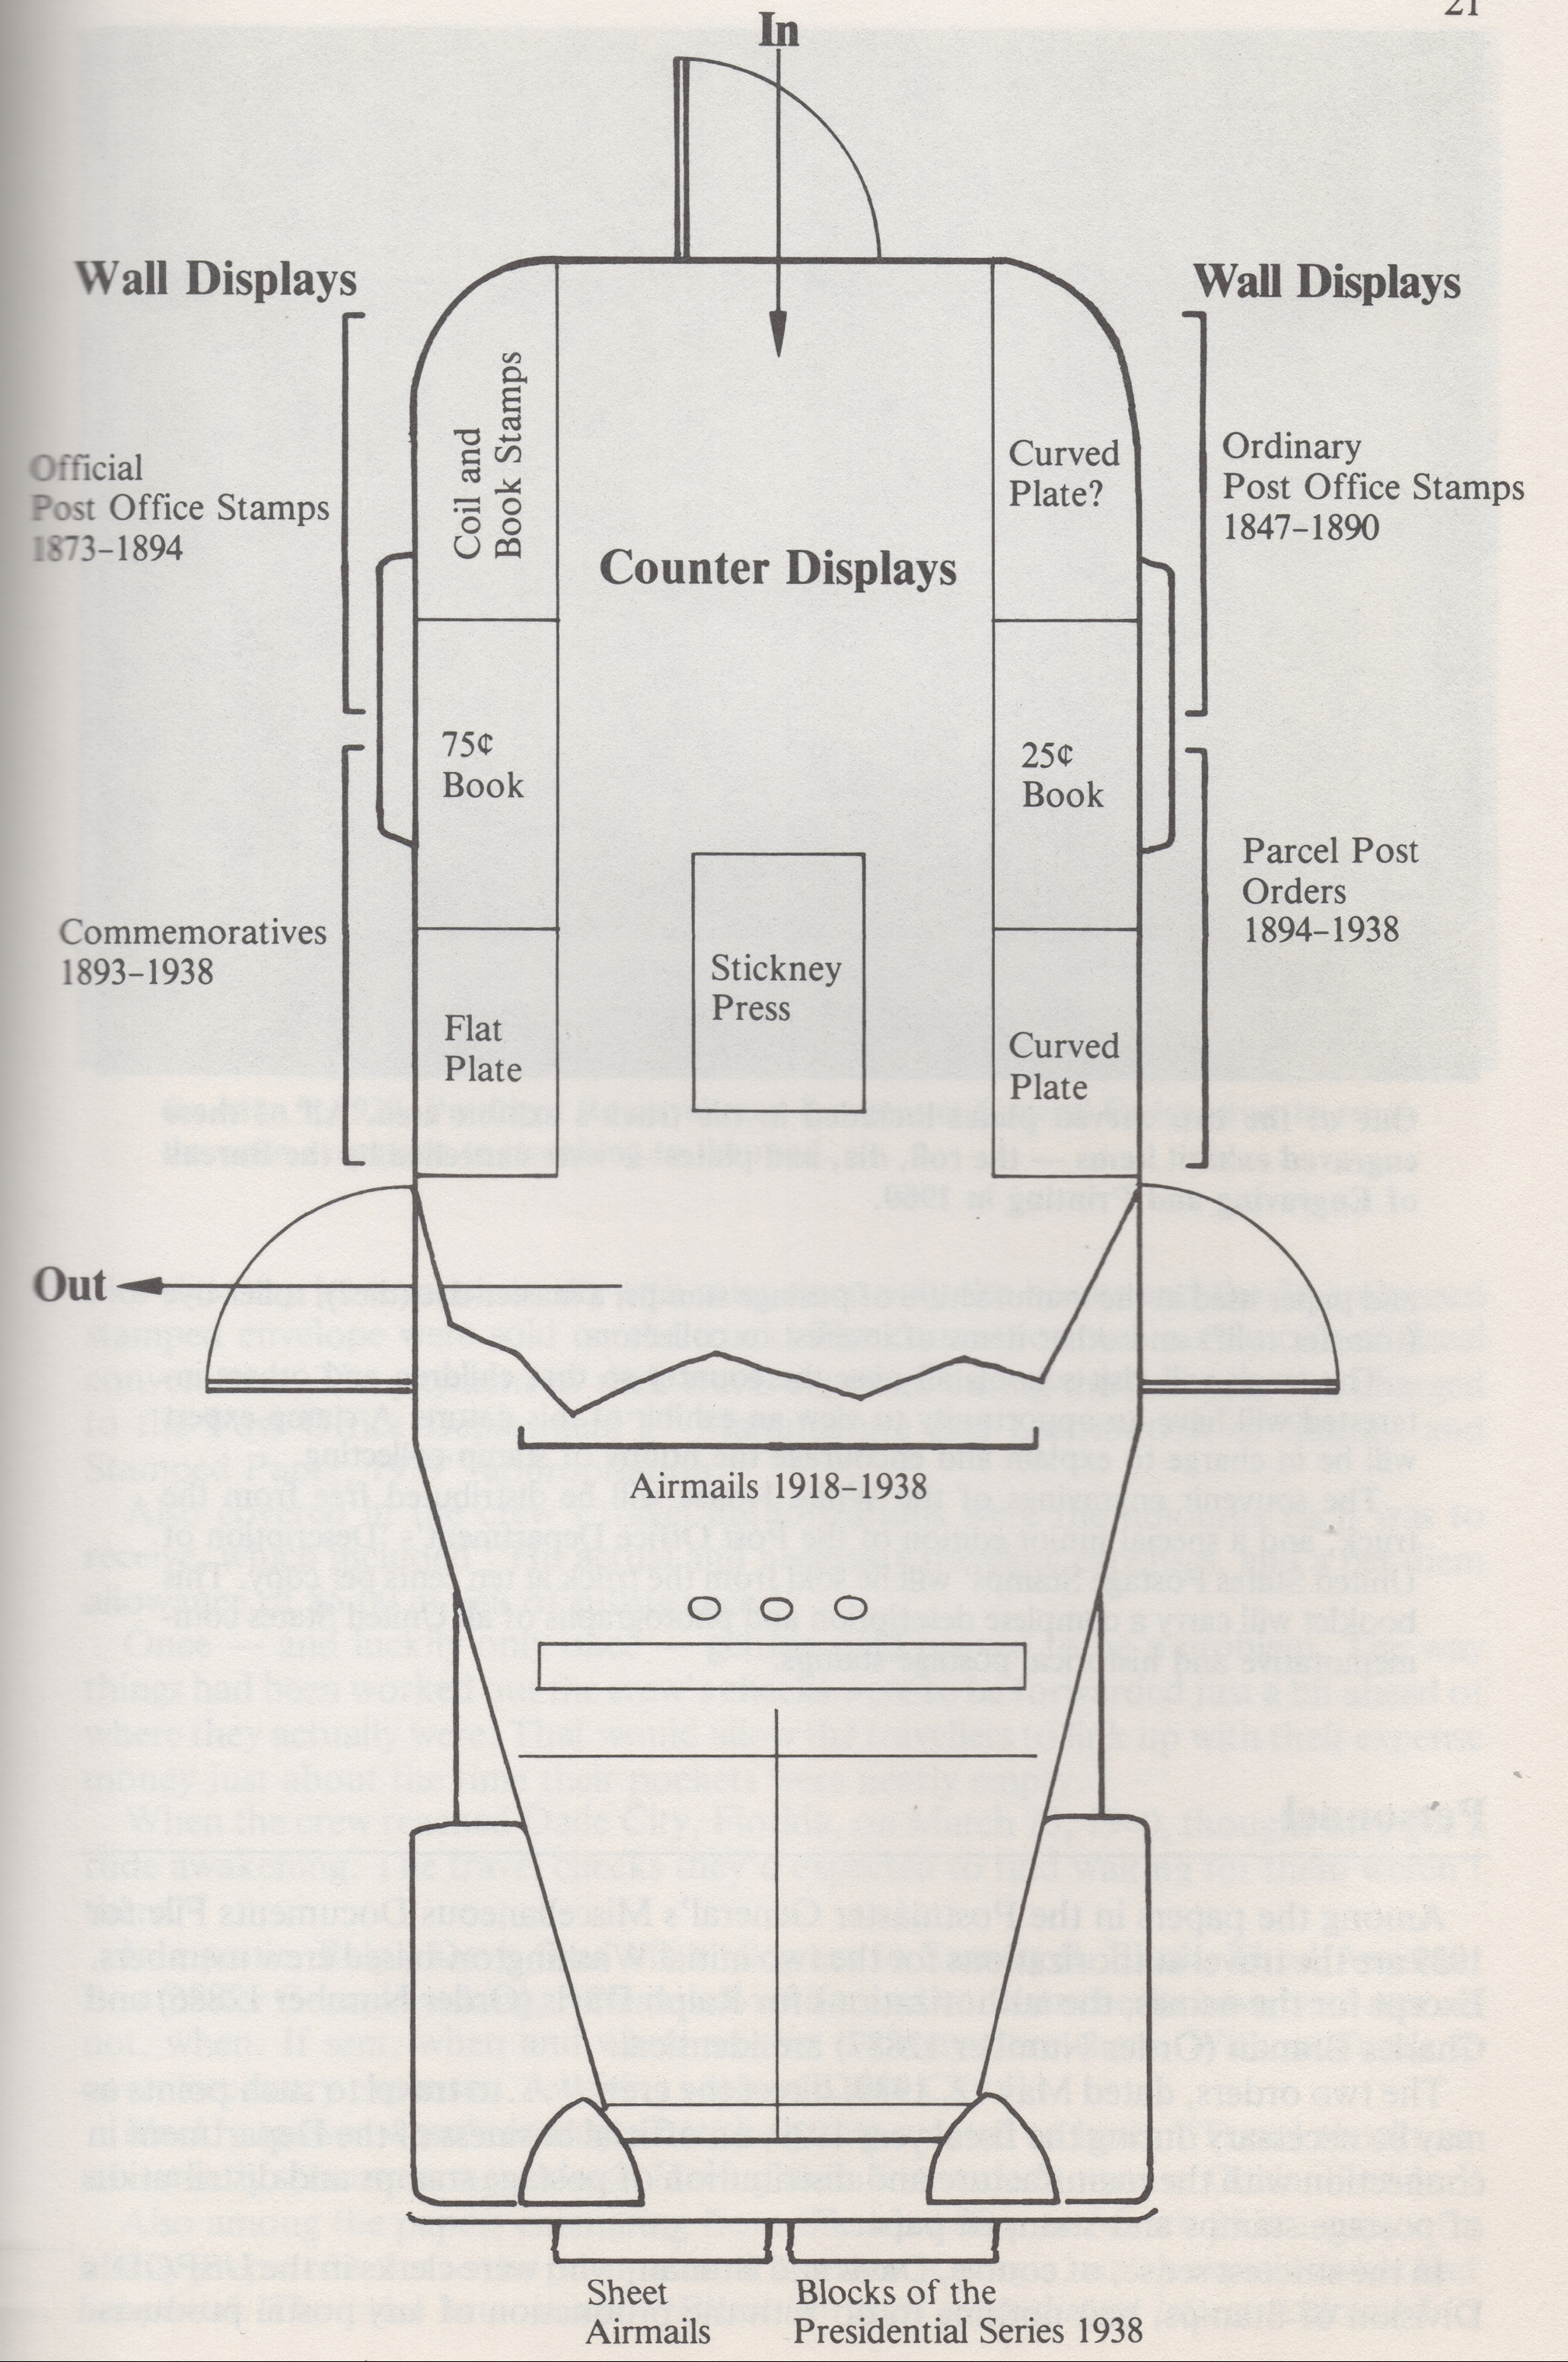 Diagram showing the placement of display cases and frames exhibited within the Philatelic Truck, 1939-1941.